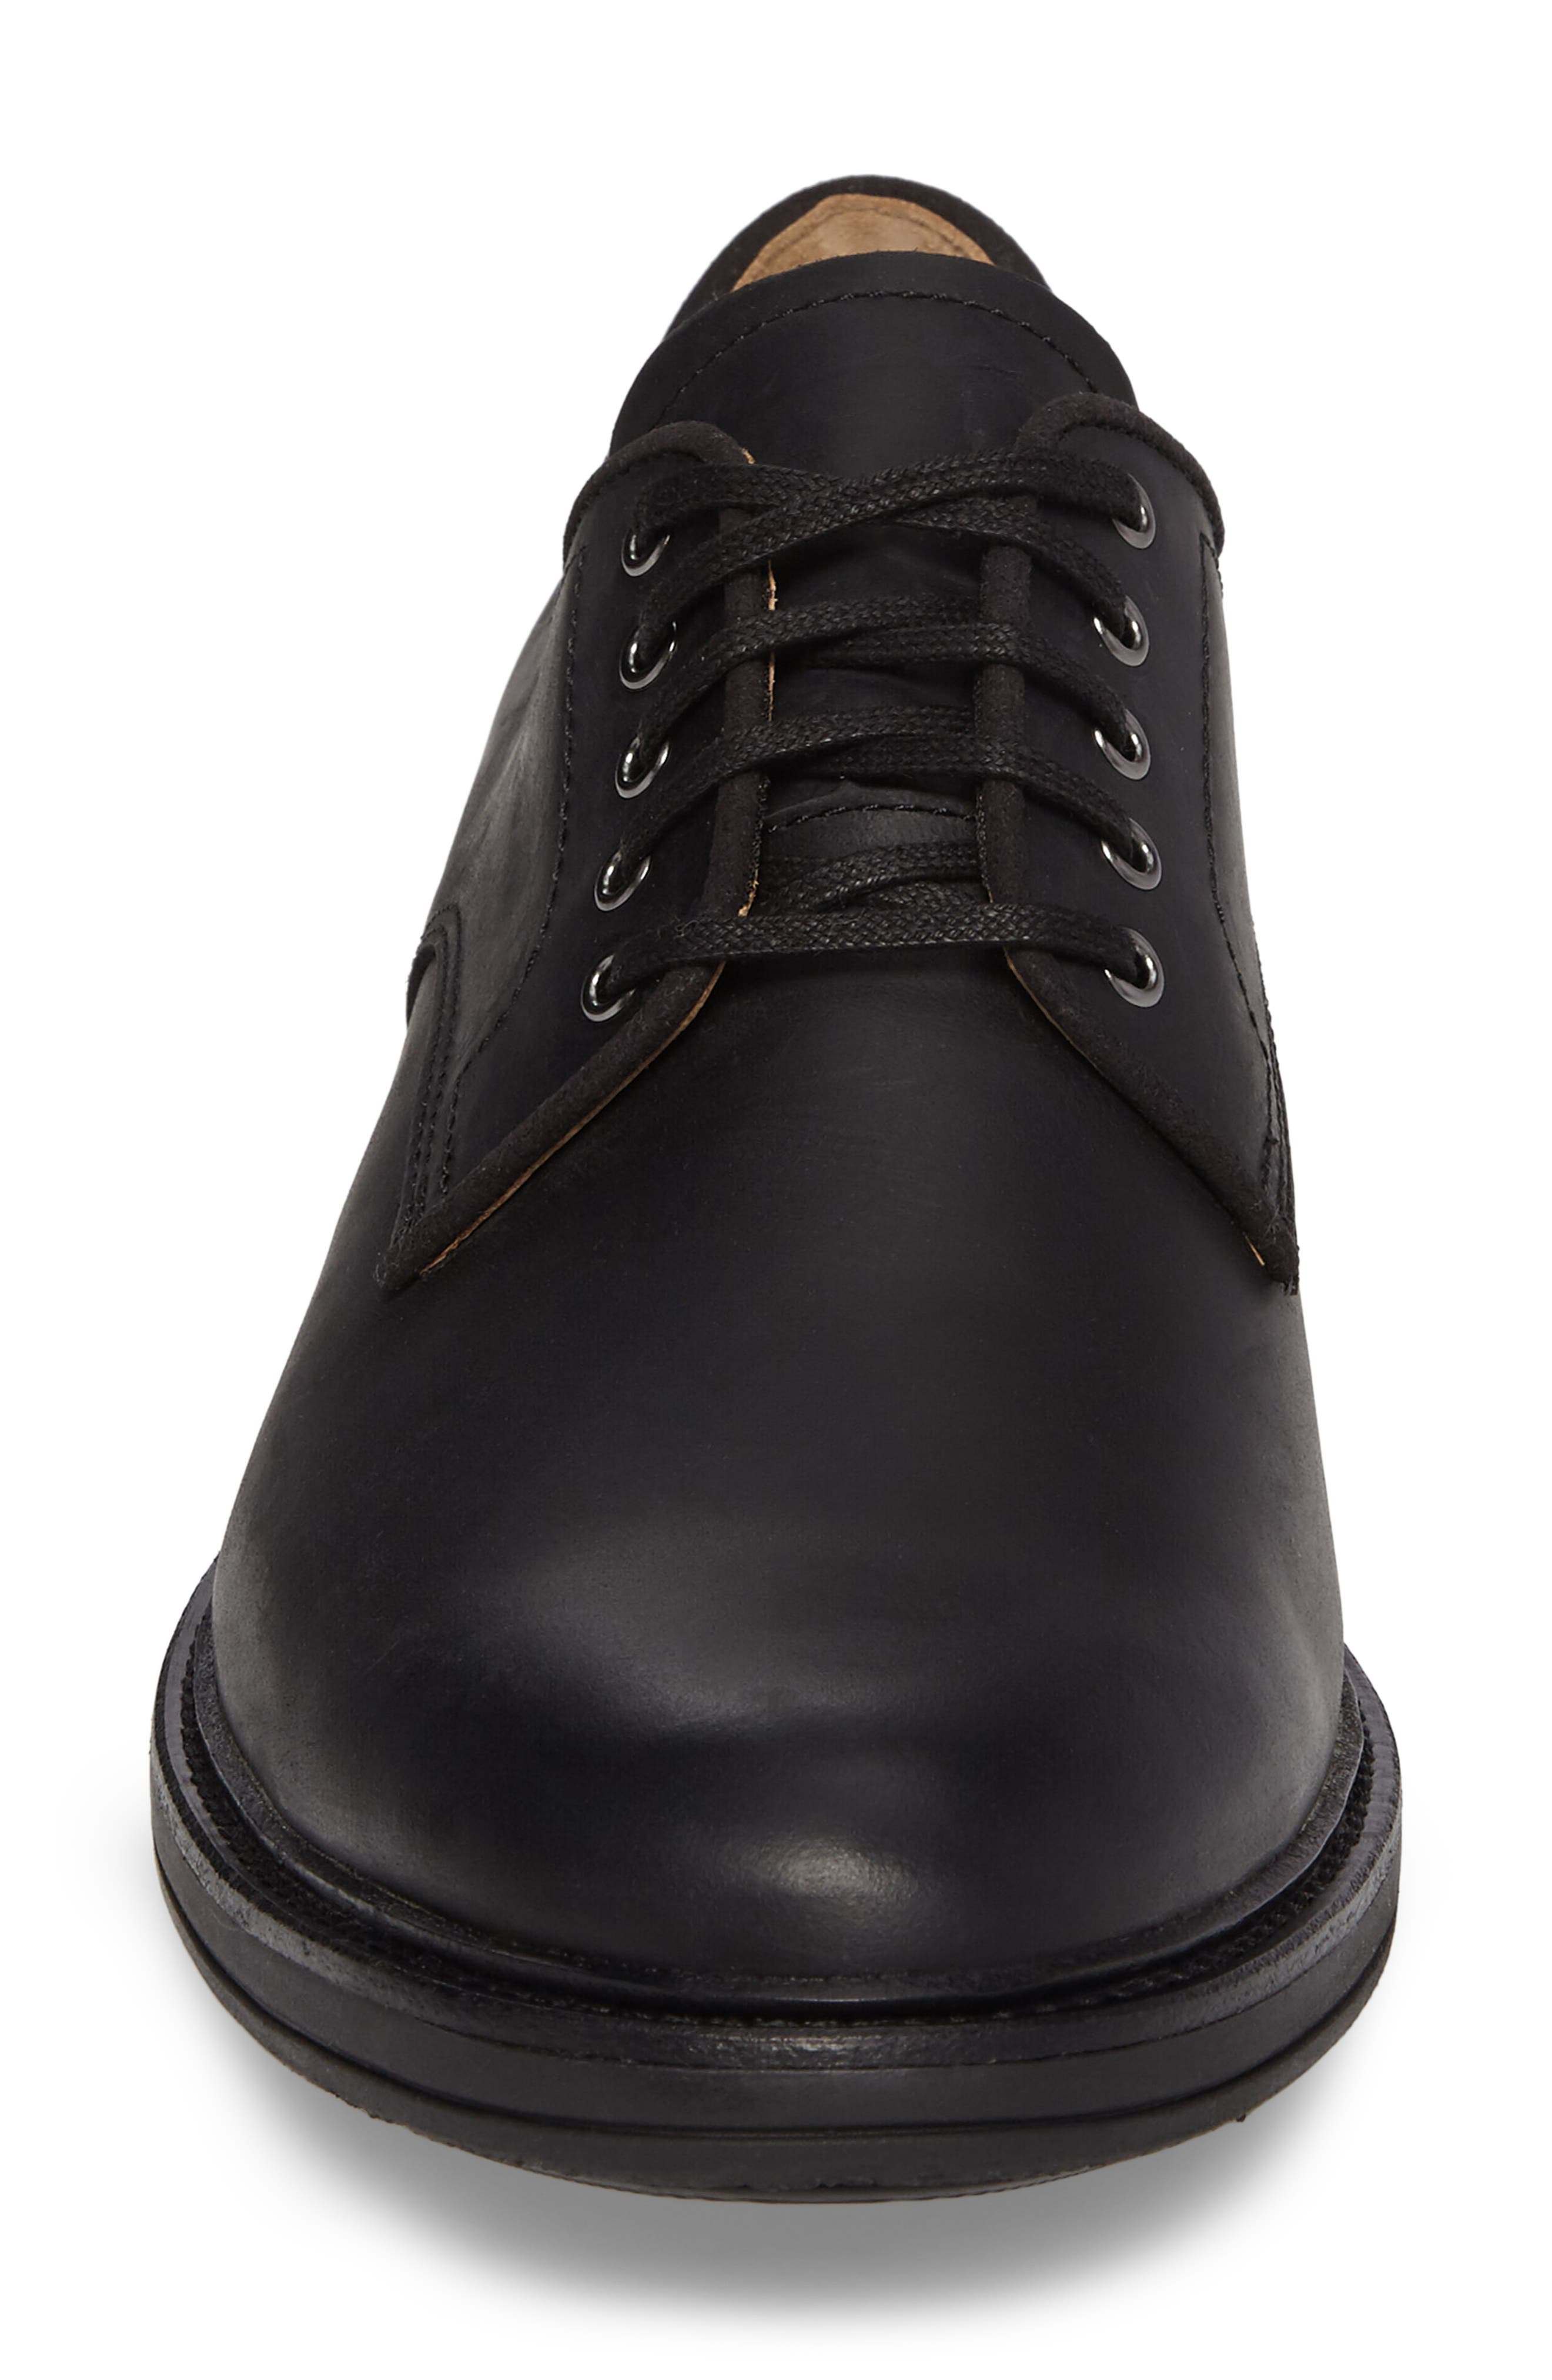 Jovin Buck Shoe,                             Alternate thumbnail 4, color,                             Black